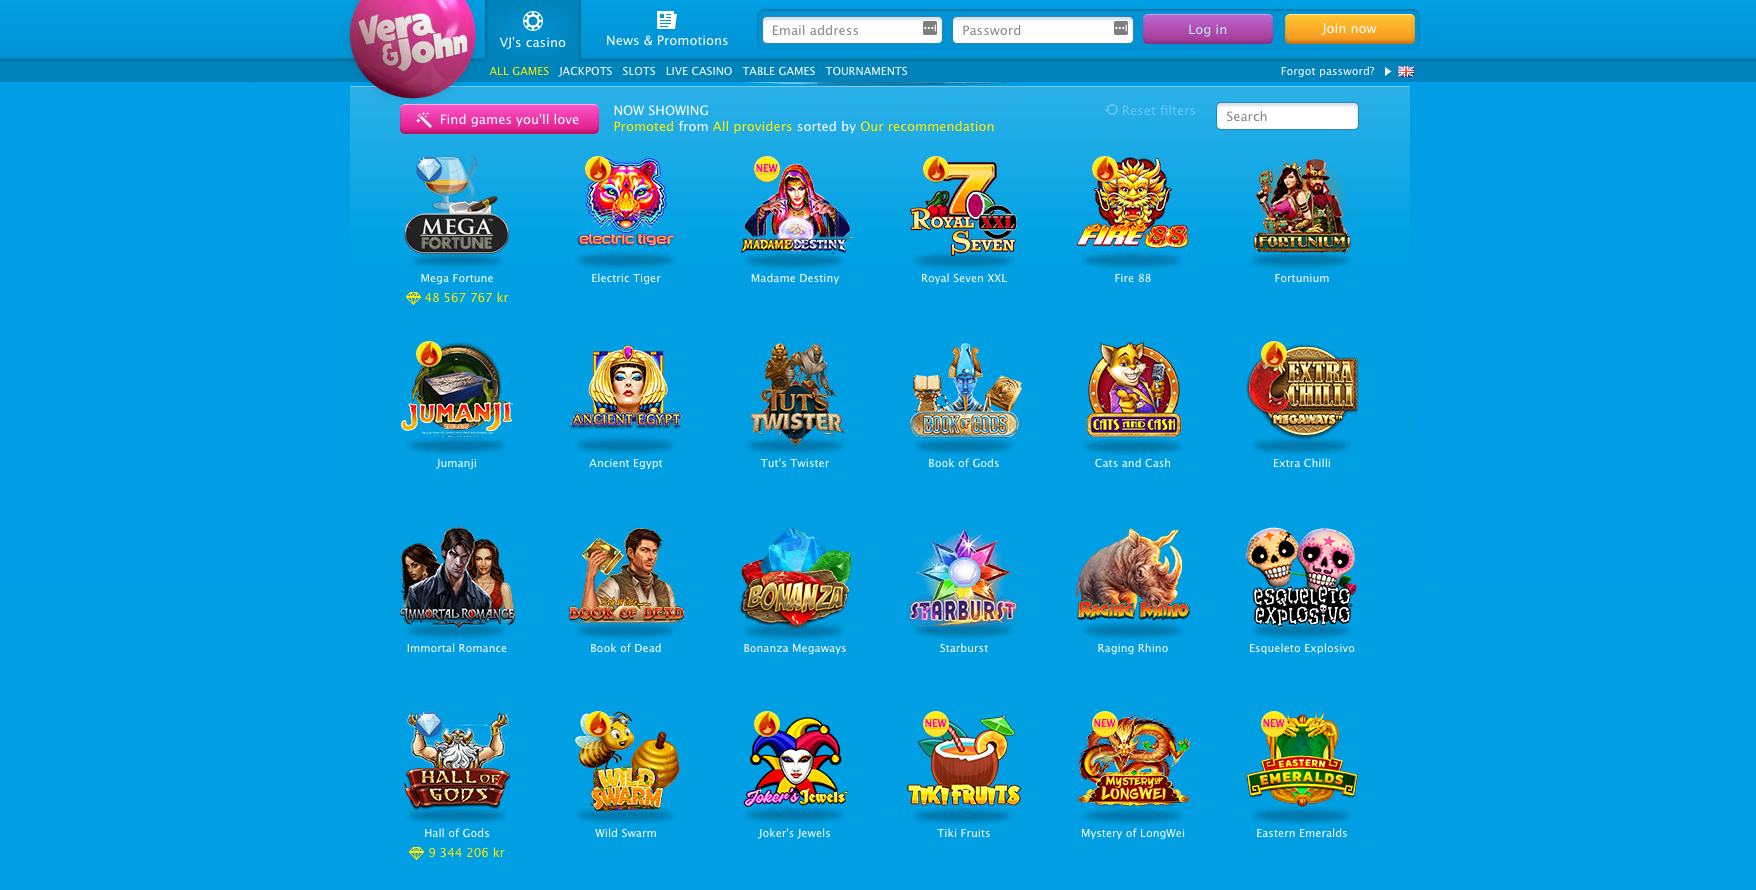 An image of popular games at Vera & John Casino